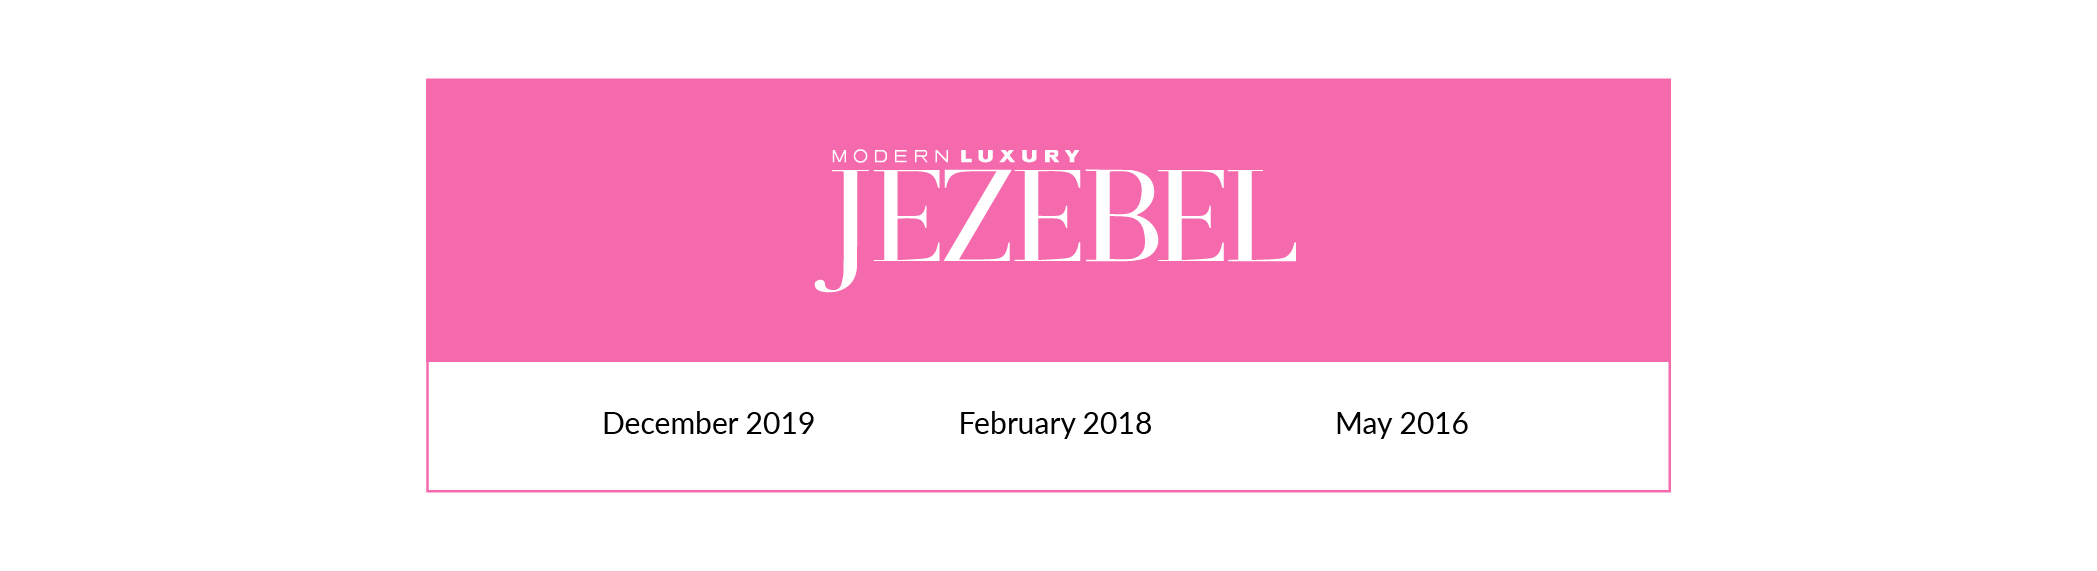 Jezebel | December 2019, February 2018, May 2016